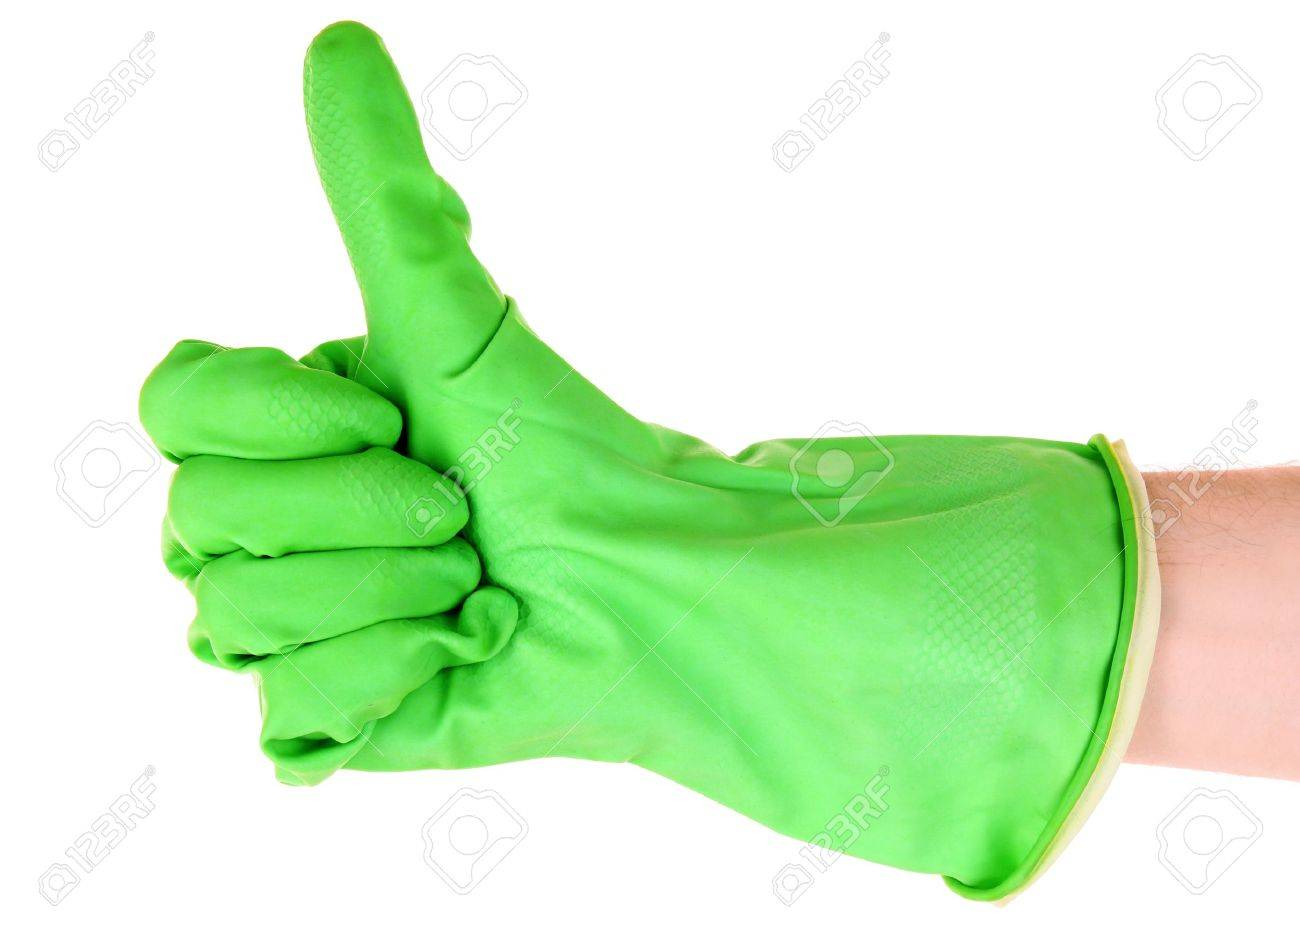 Lach poce vair  9211435-Thumbs-up-with-a-green-glove-on-white-Stock-Photo-glove-safety-rubber